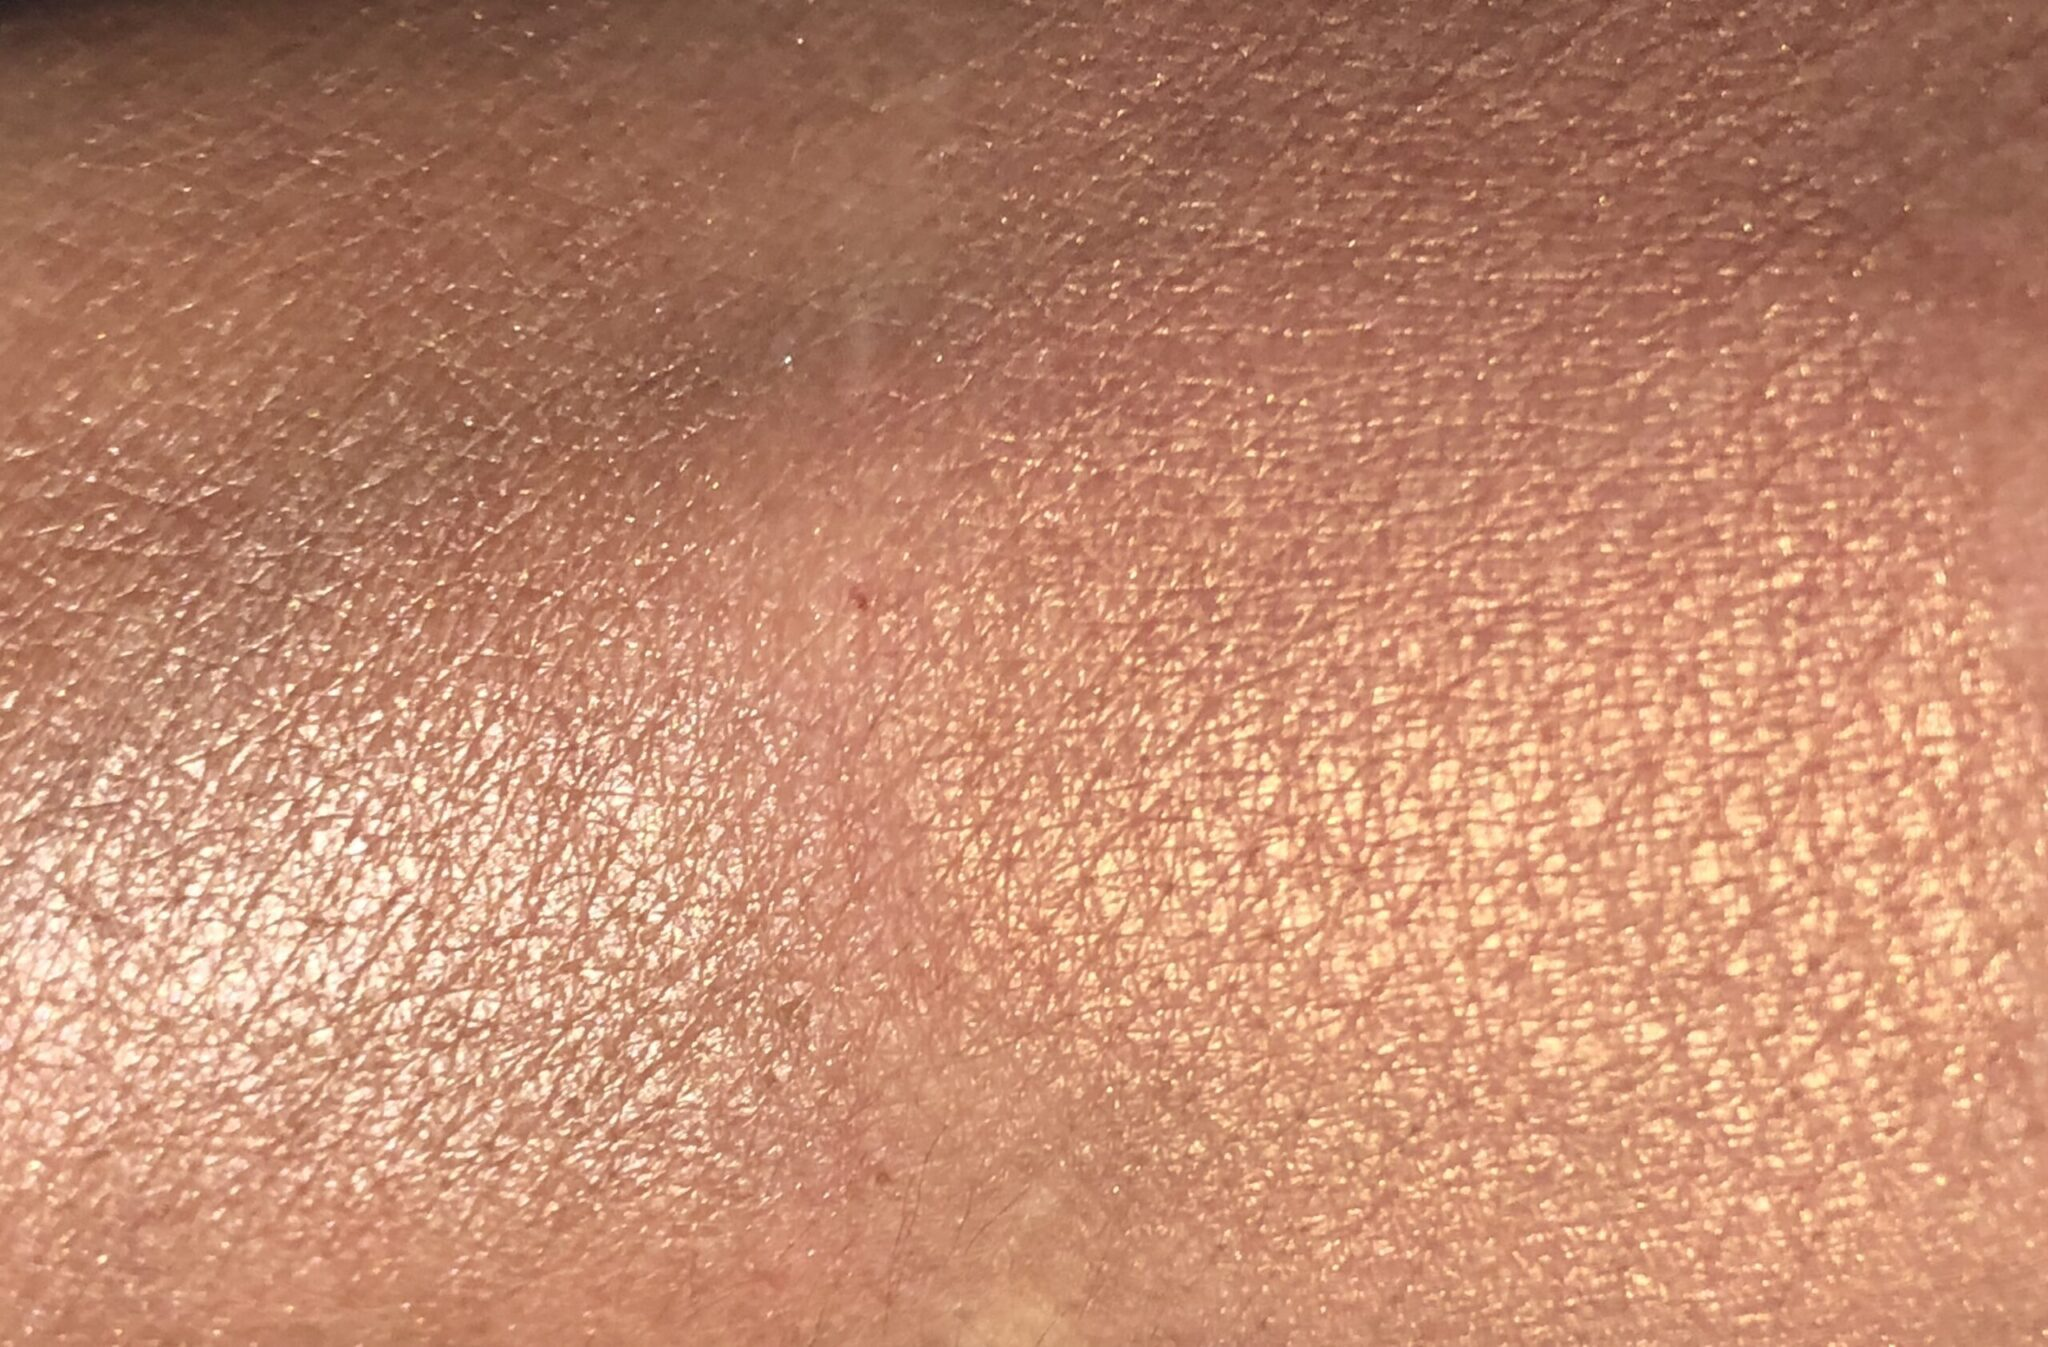 DIORSKIN NUDE LUMINIZER SHIMMERING GLOW POWDER SWATCHES LEFT IS ROSE GLOW, RIGHT IS PEACH DUNE